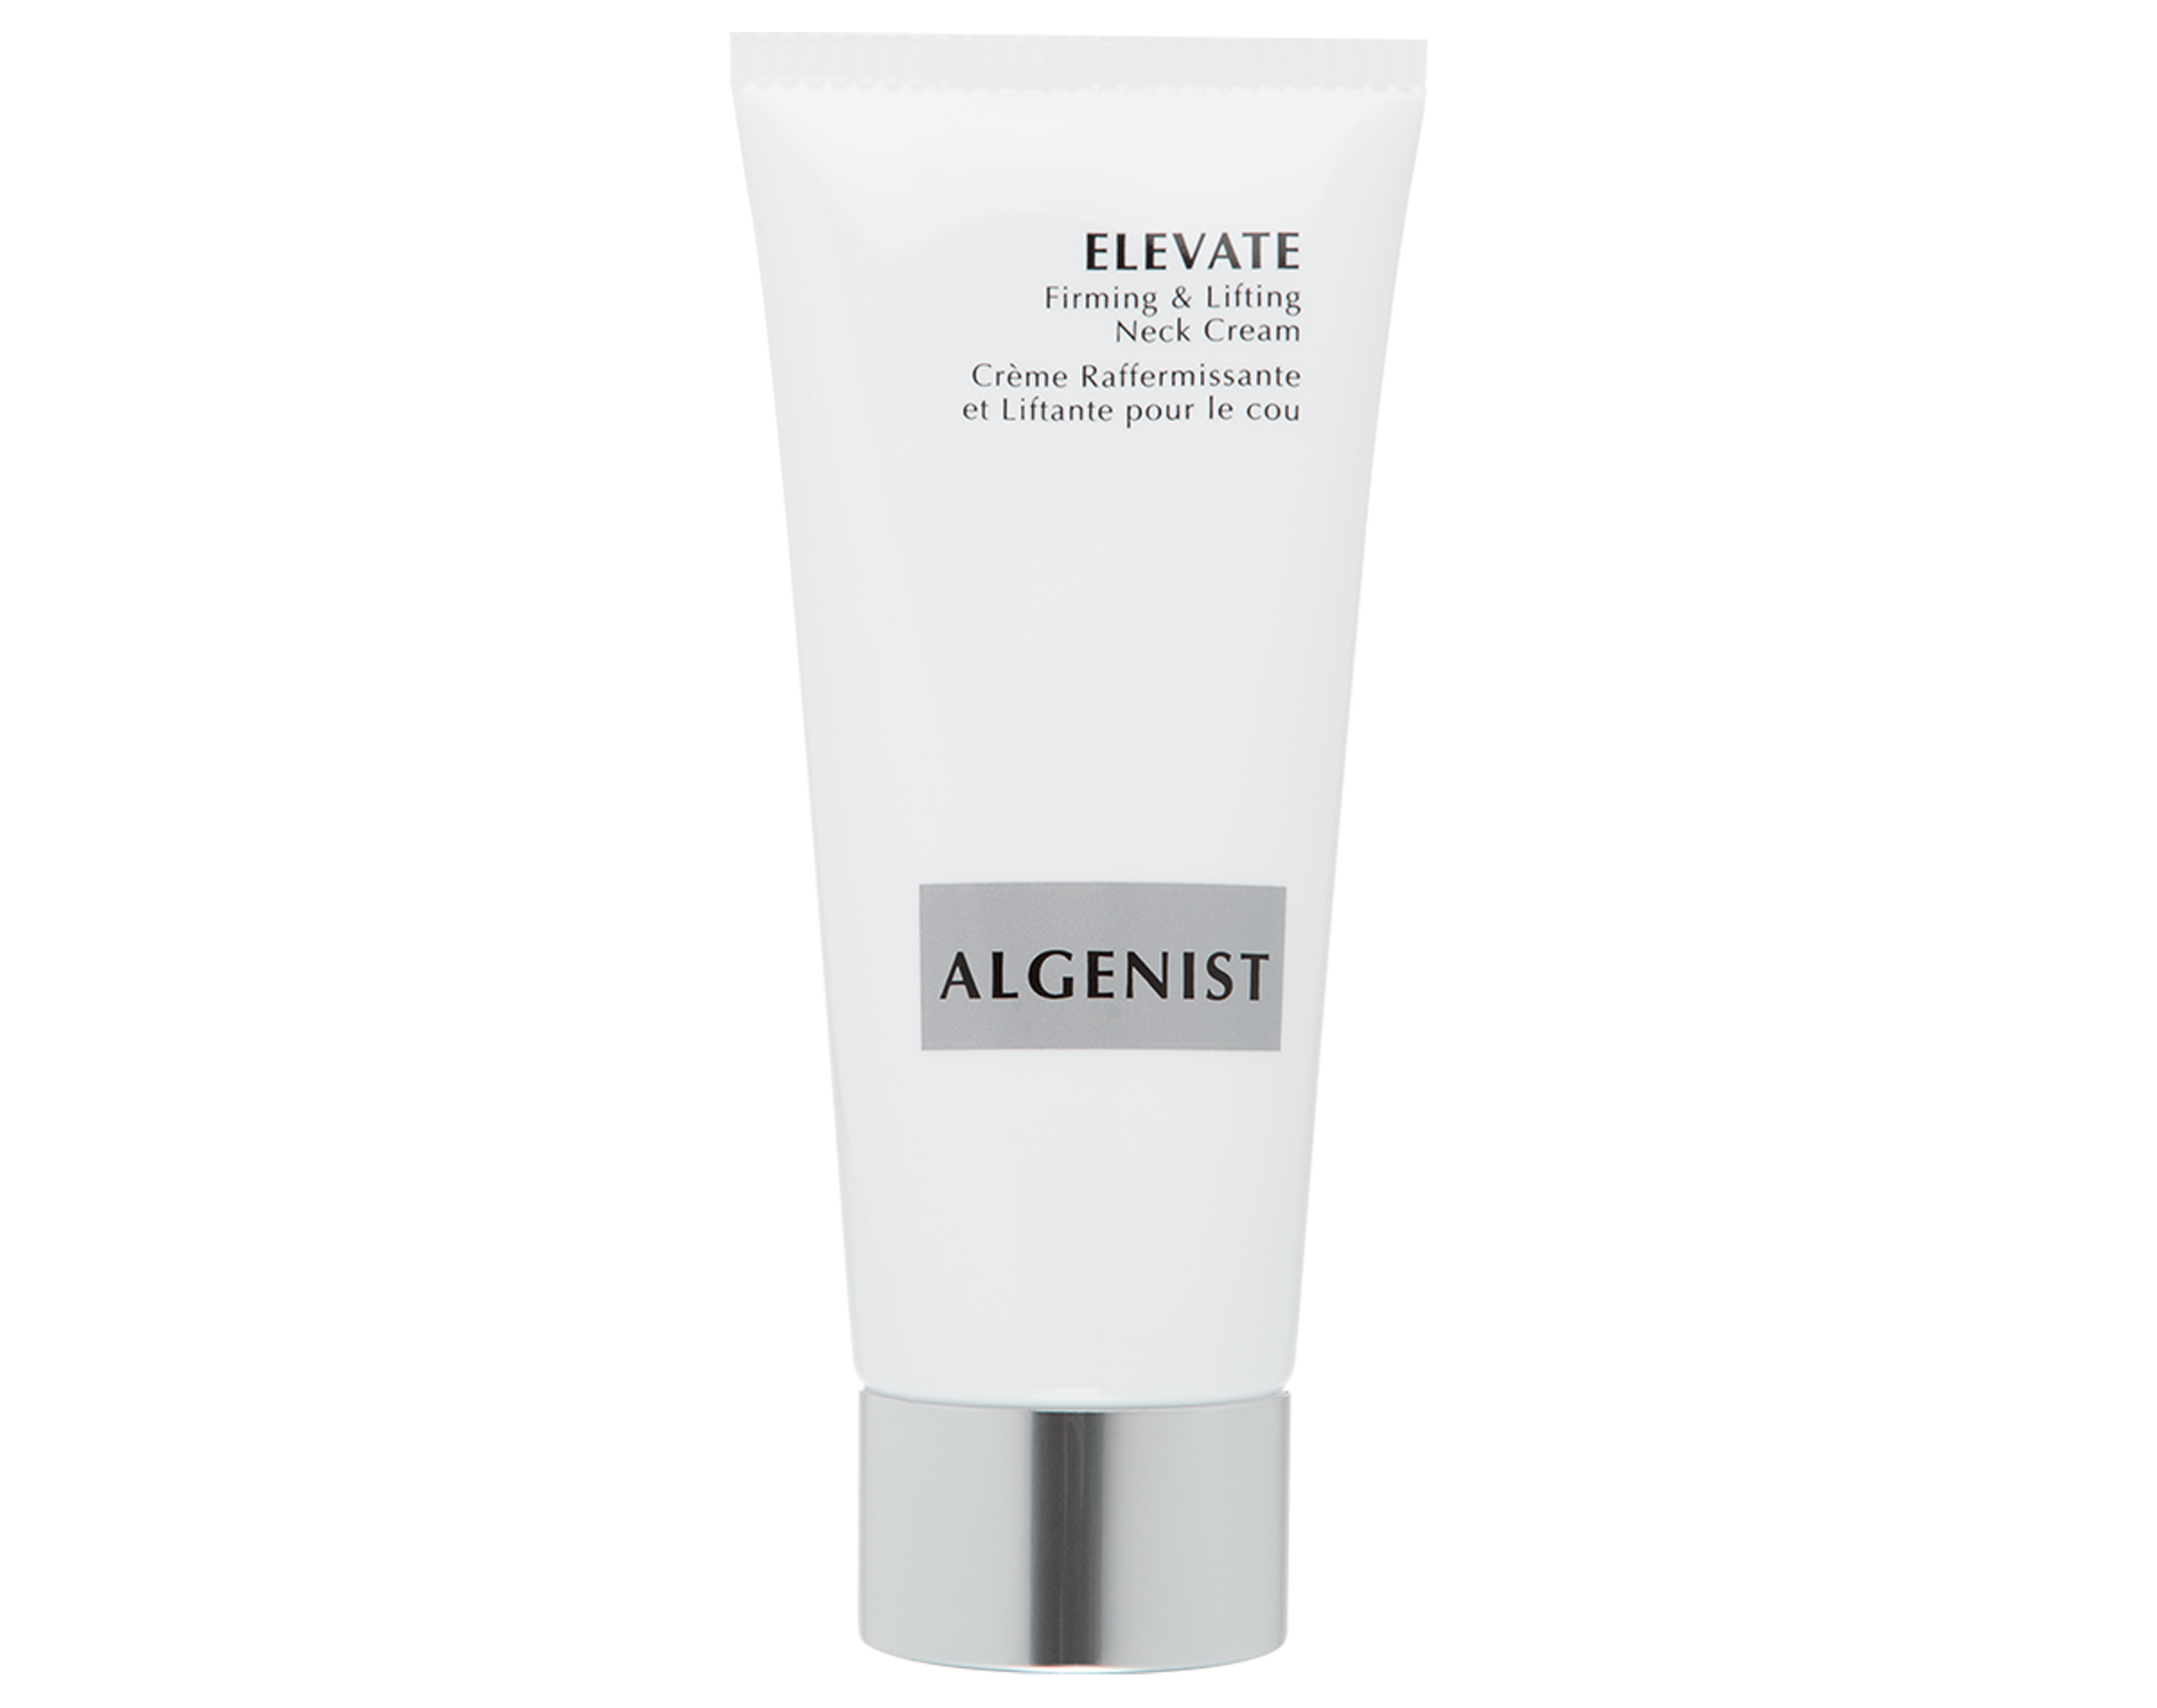 Algenist Elevate Firming & Lifting Neck Cream, £78/AED350.12, Look Fantastic